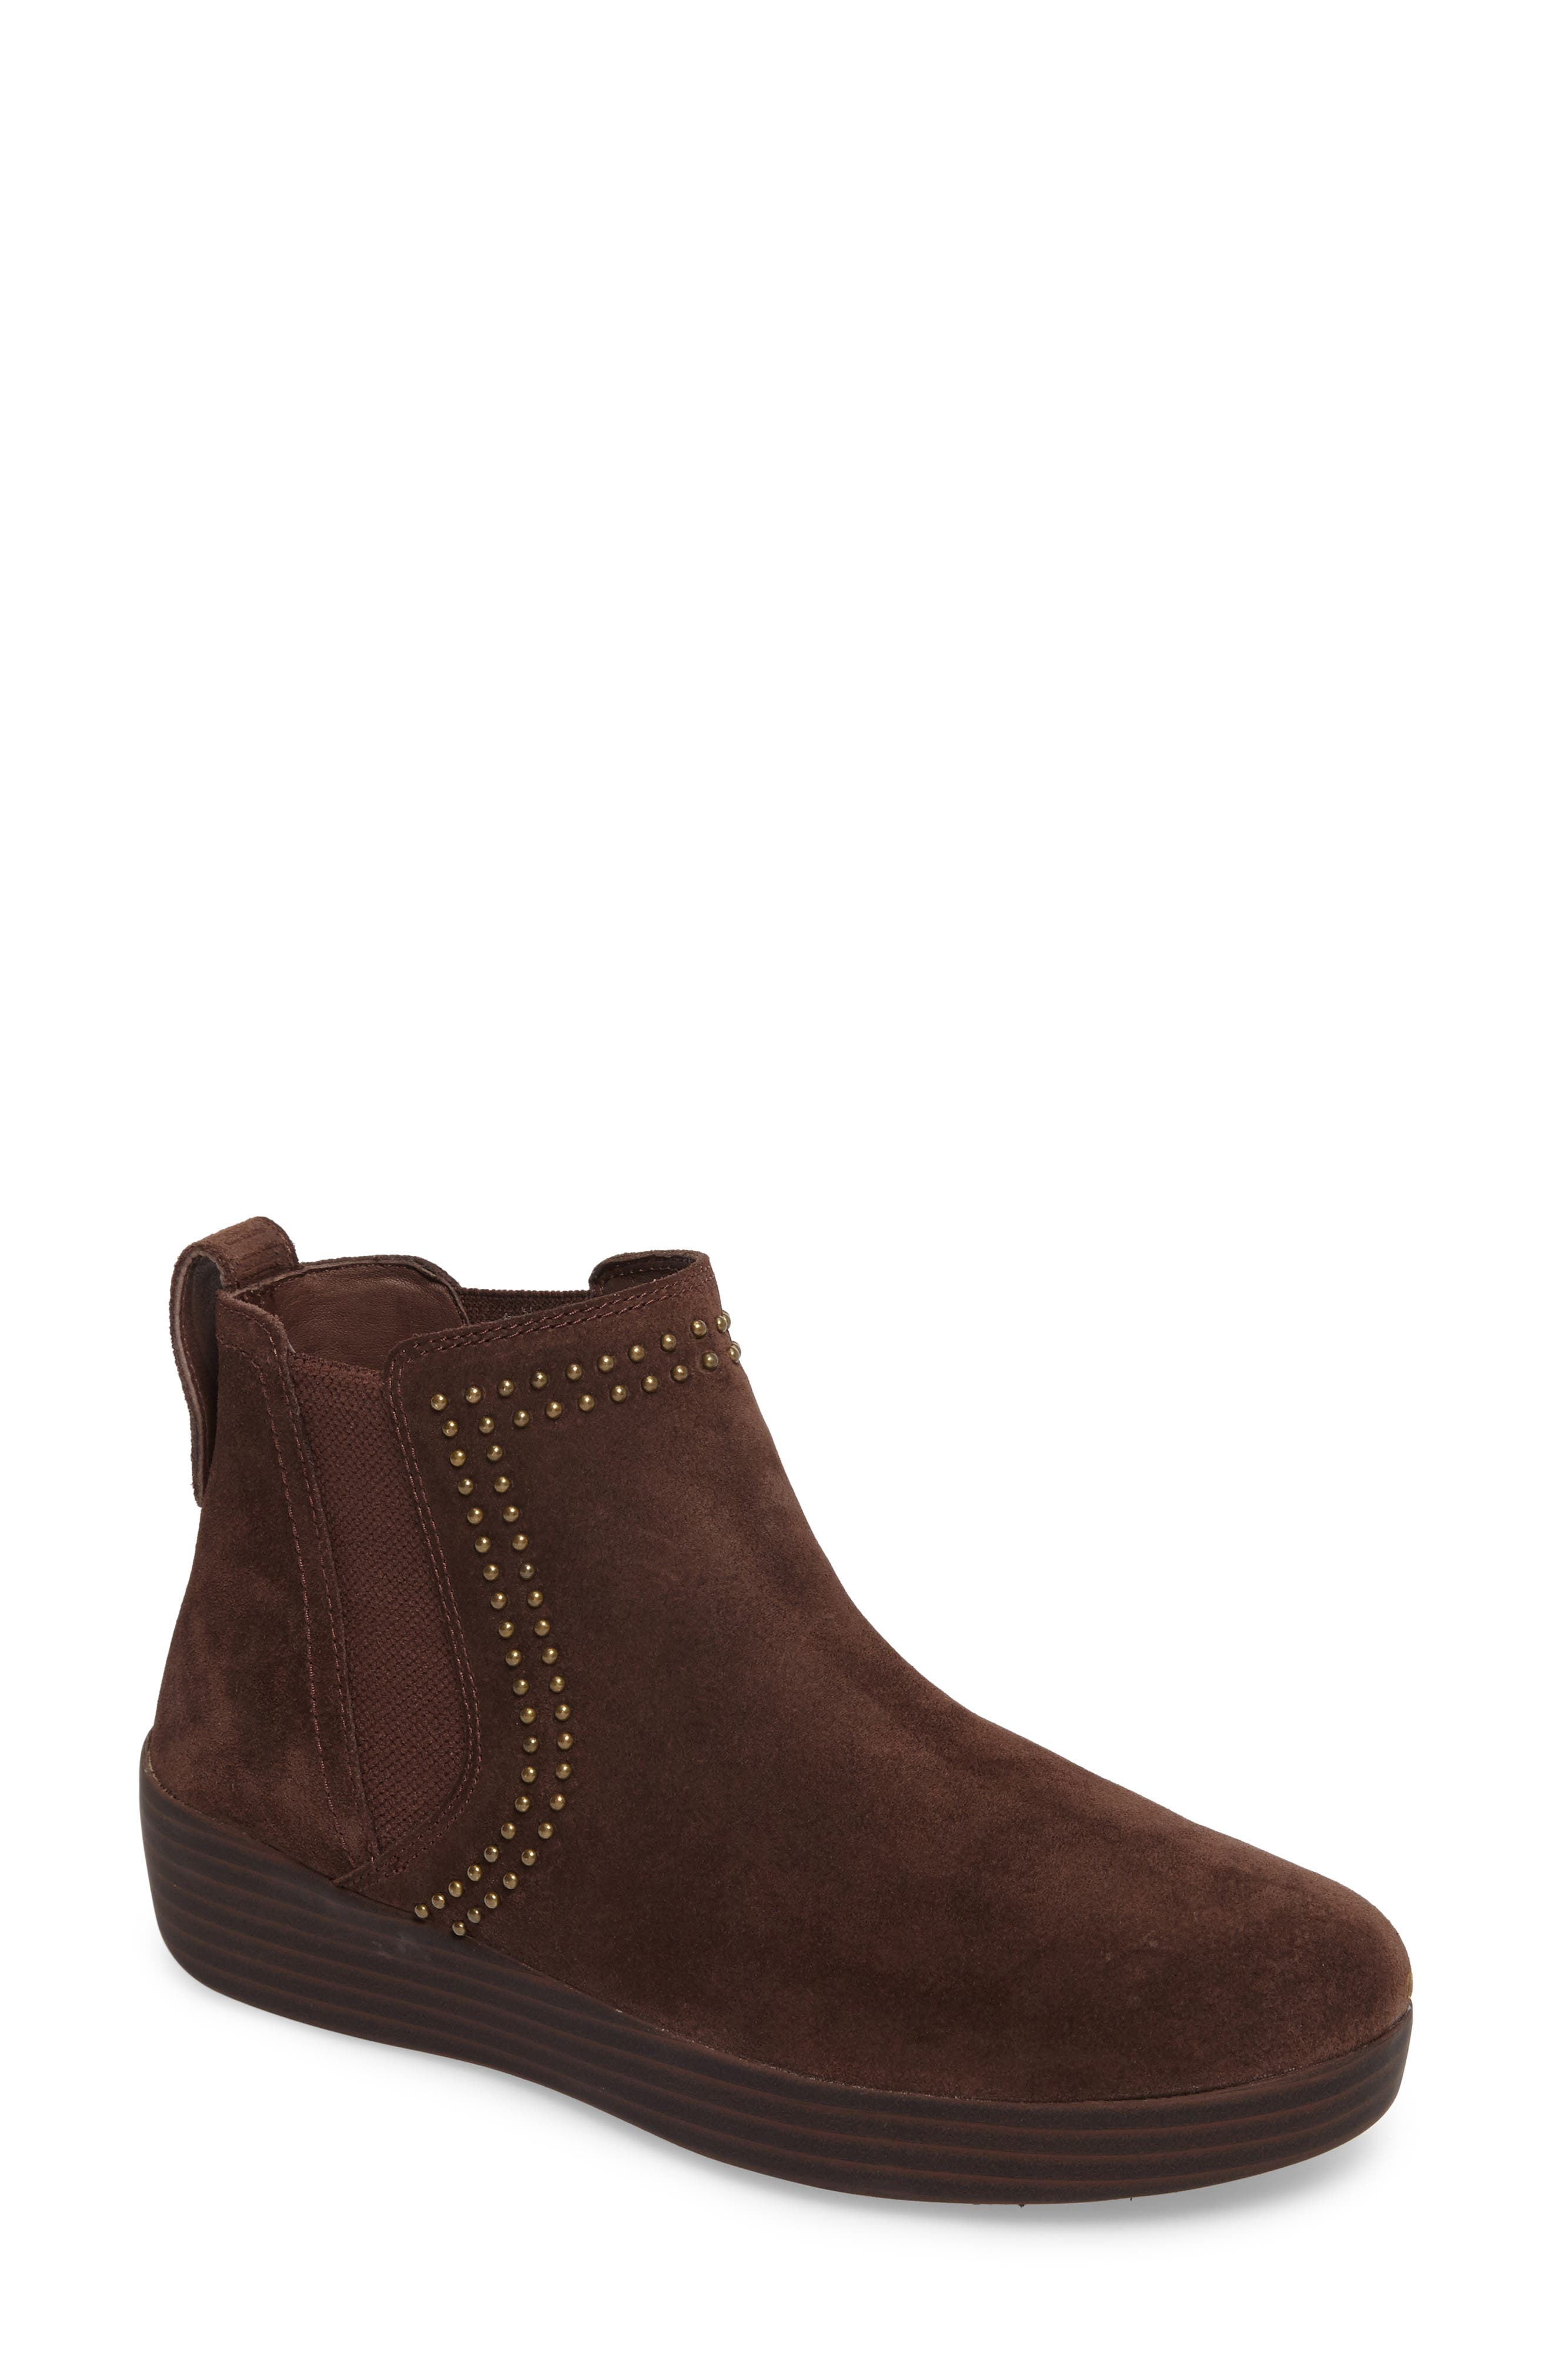 Superchelsea Studded Boot,                         Main,                         color, Chocolate